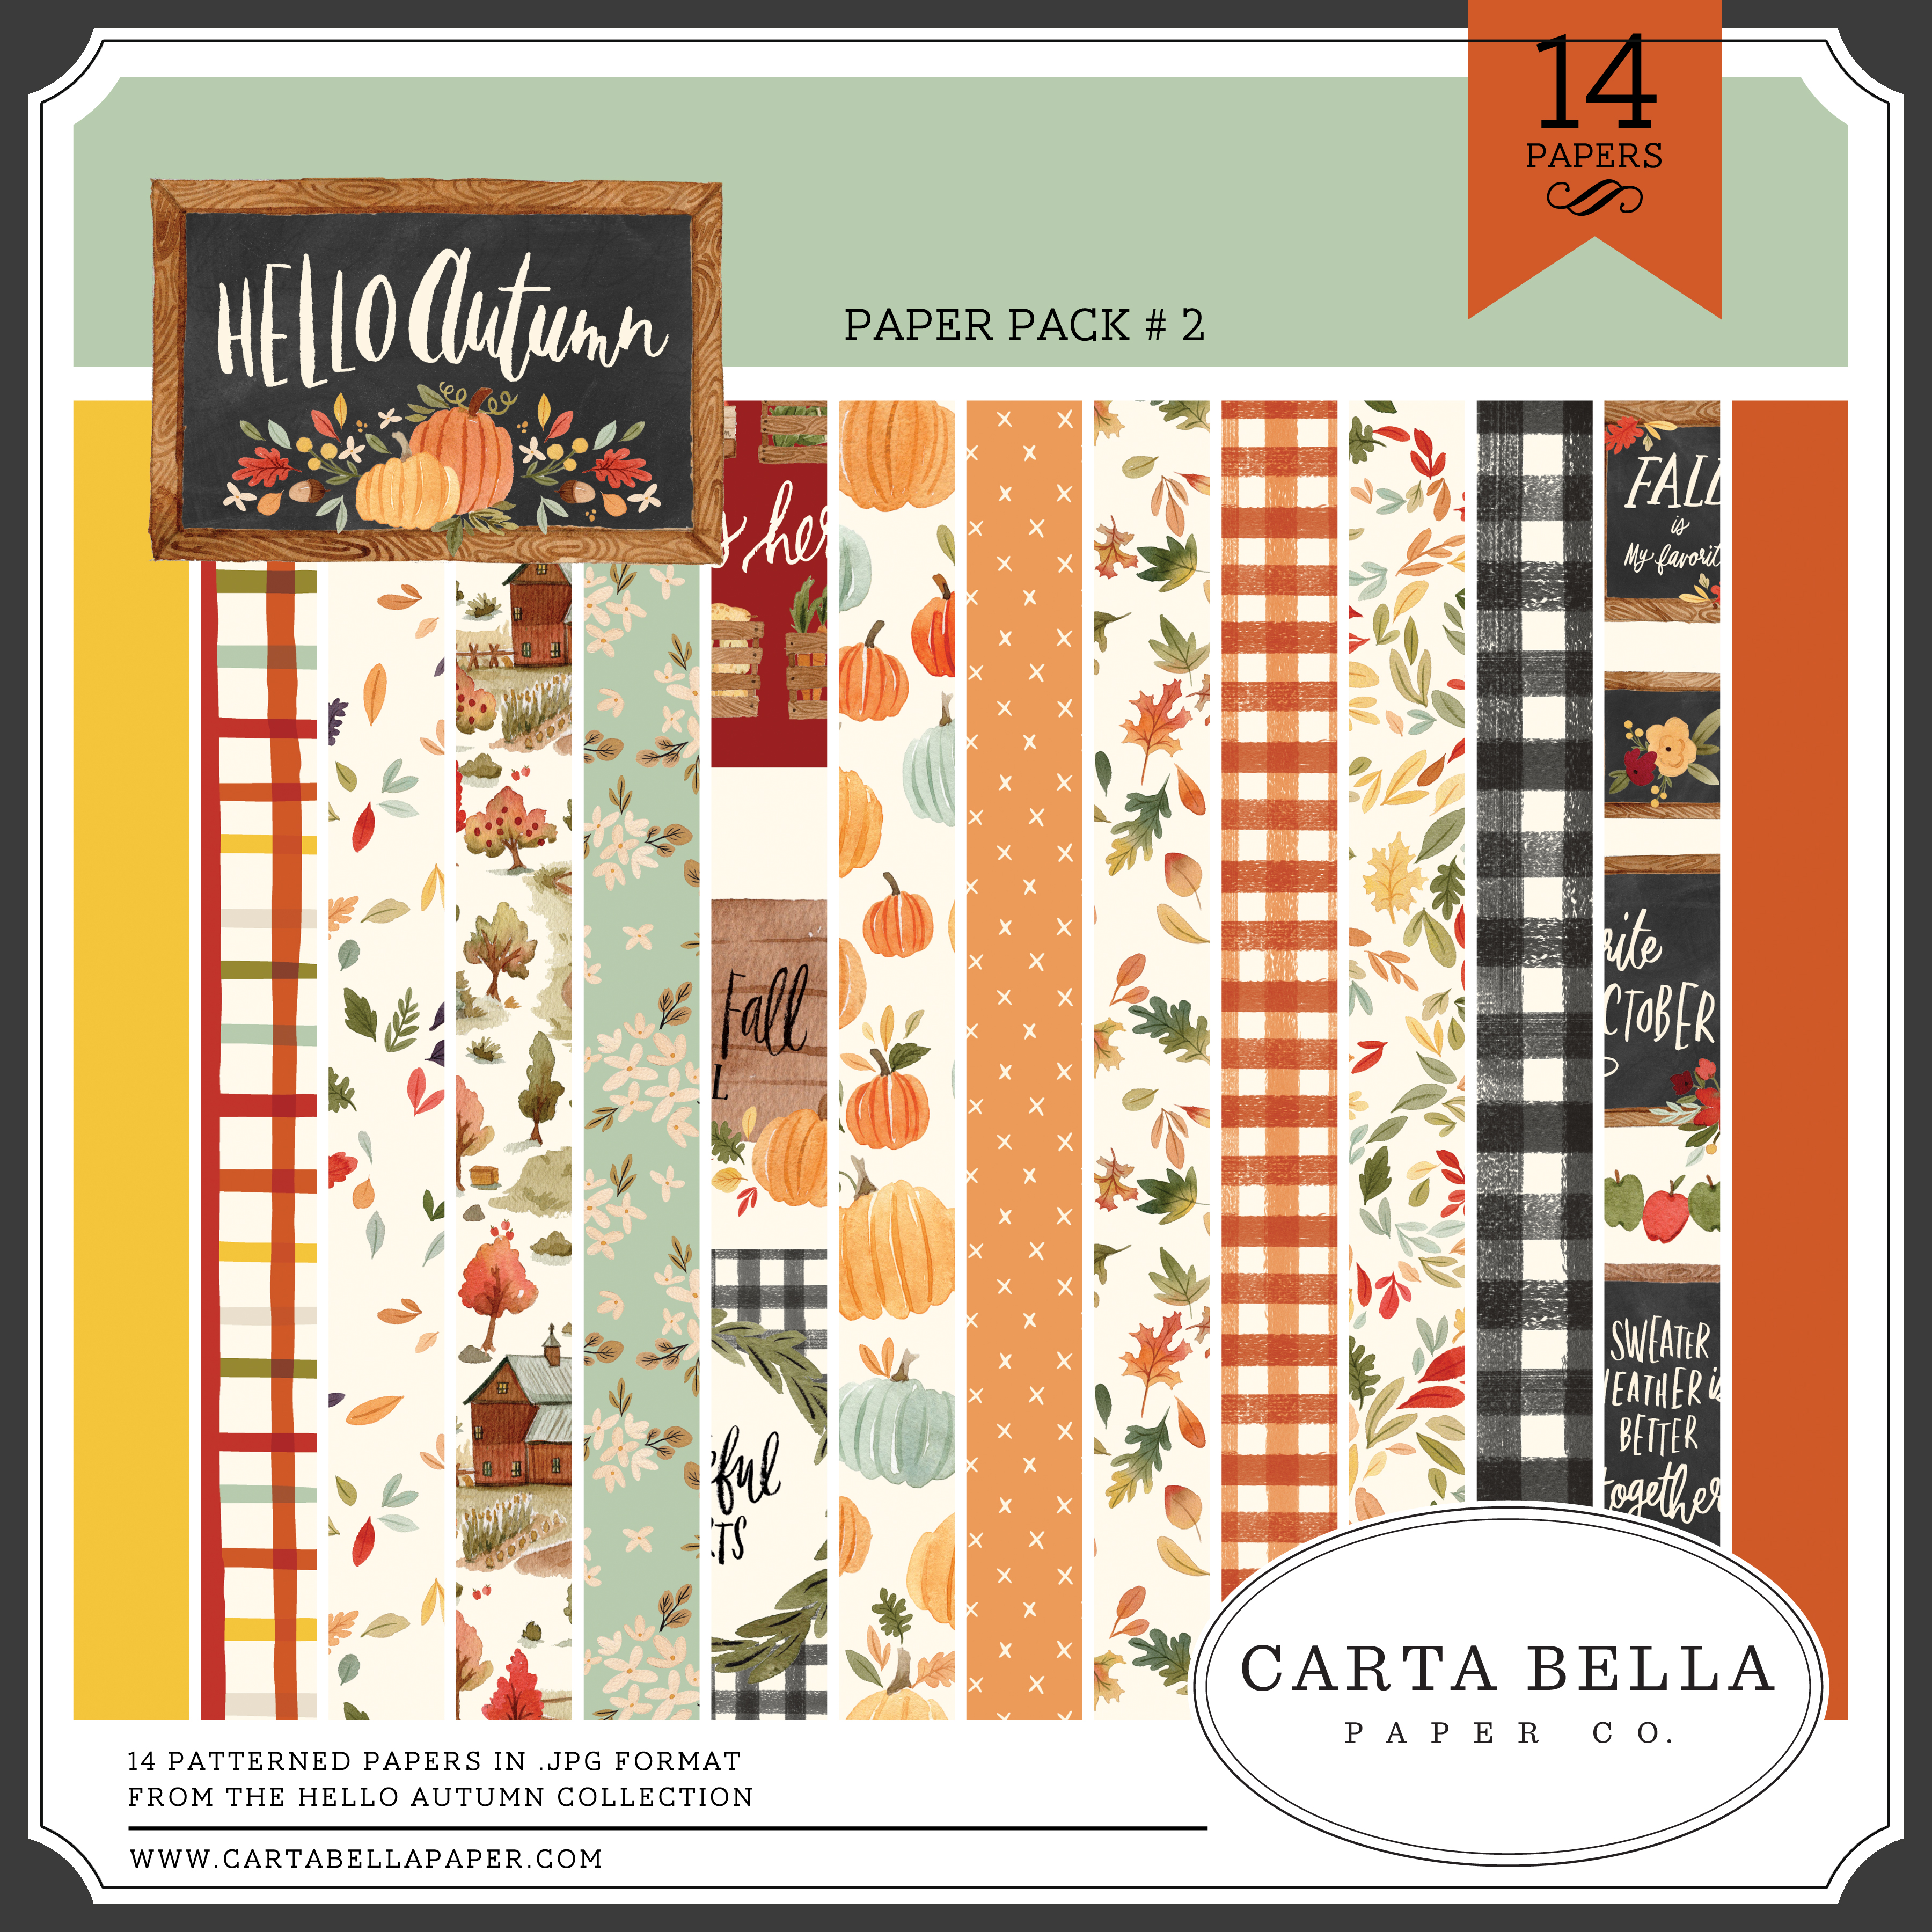 Hello Autumn Paper Pack #2